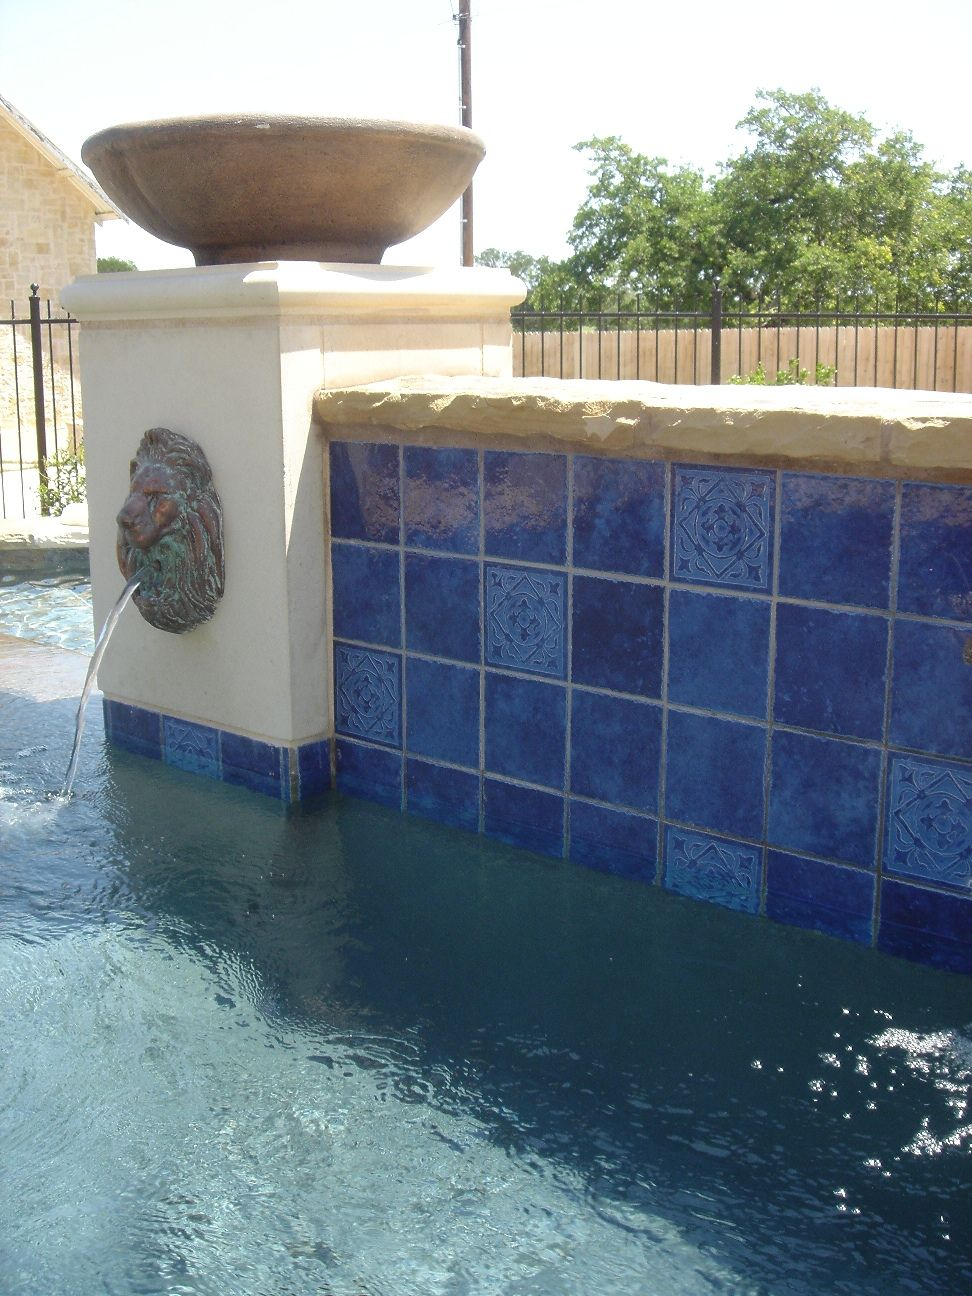 Tahitian gloss blue 6 in x 6 in stone look pinterest resplendent classic pool tile rodio with king lion head wall fountain water feature also wrought iron pool fence ideas of pool tiles doublecrazyfo Image collections